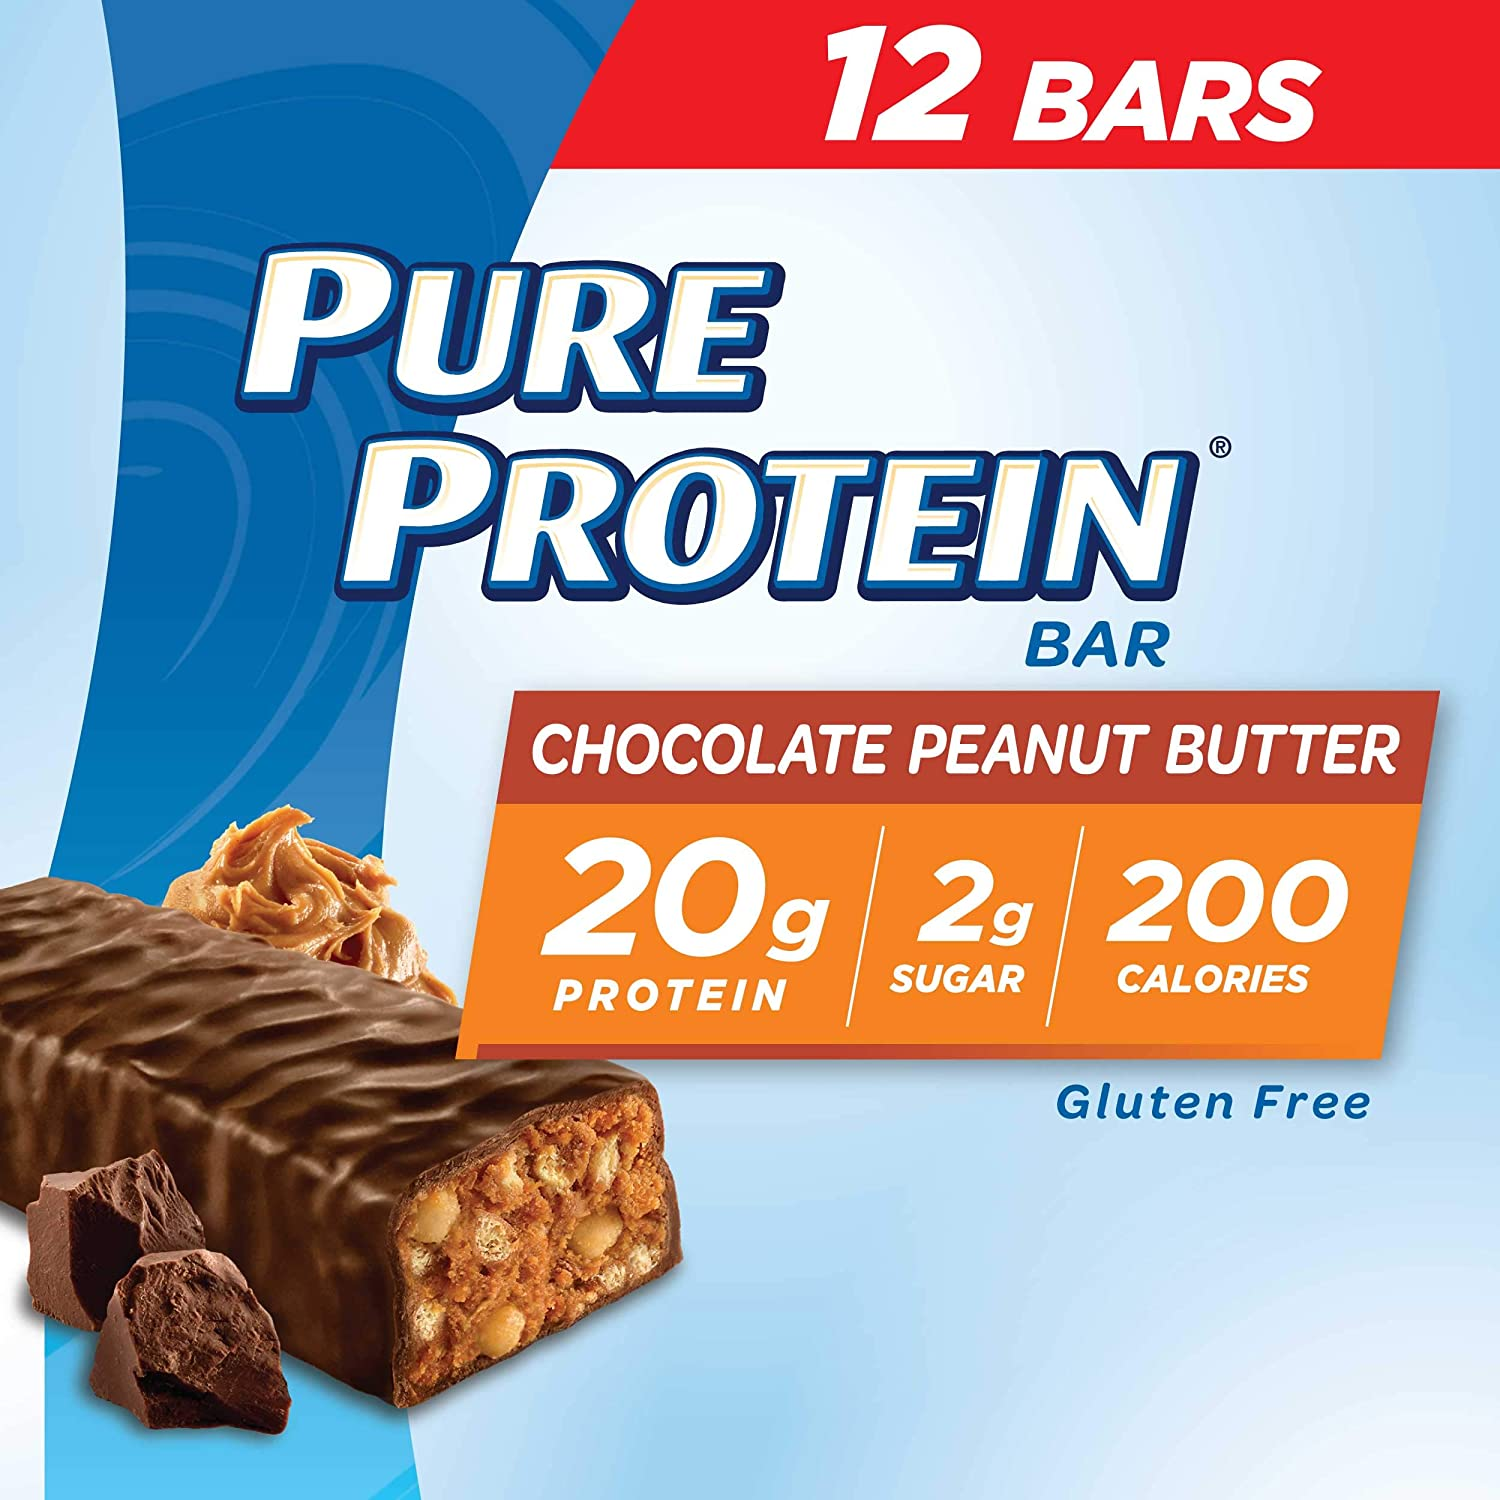 B00GJ82VK4 Pure Protein Bars, High Protein, Nutritious Snacks to Support Energy, Low Sugar, Gluten Free, Chocolate Peanut Butter, 1.76oz, 12 Pack 816dQgypjsL